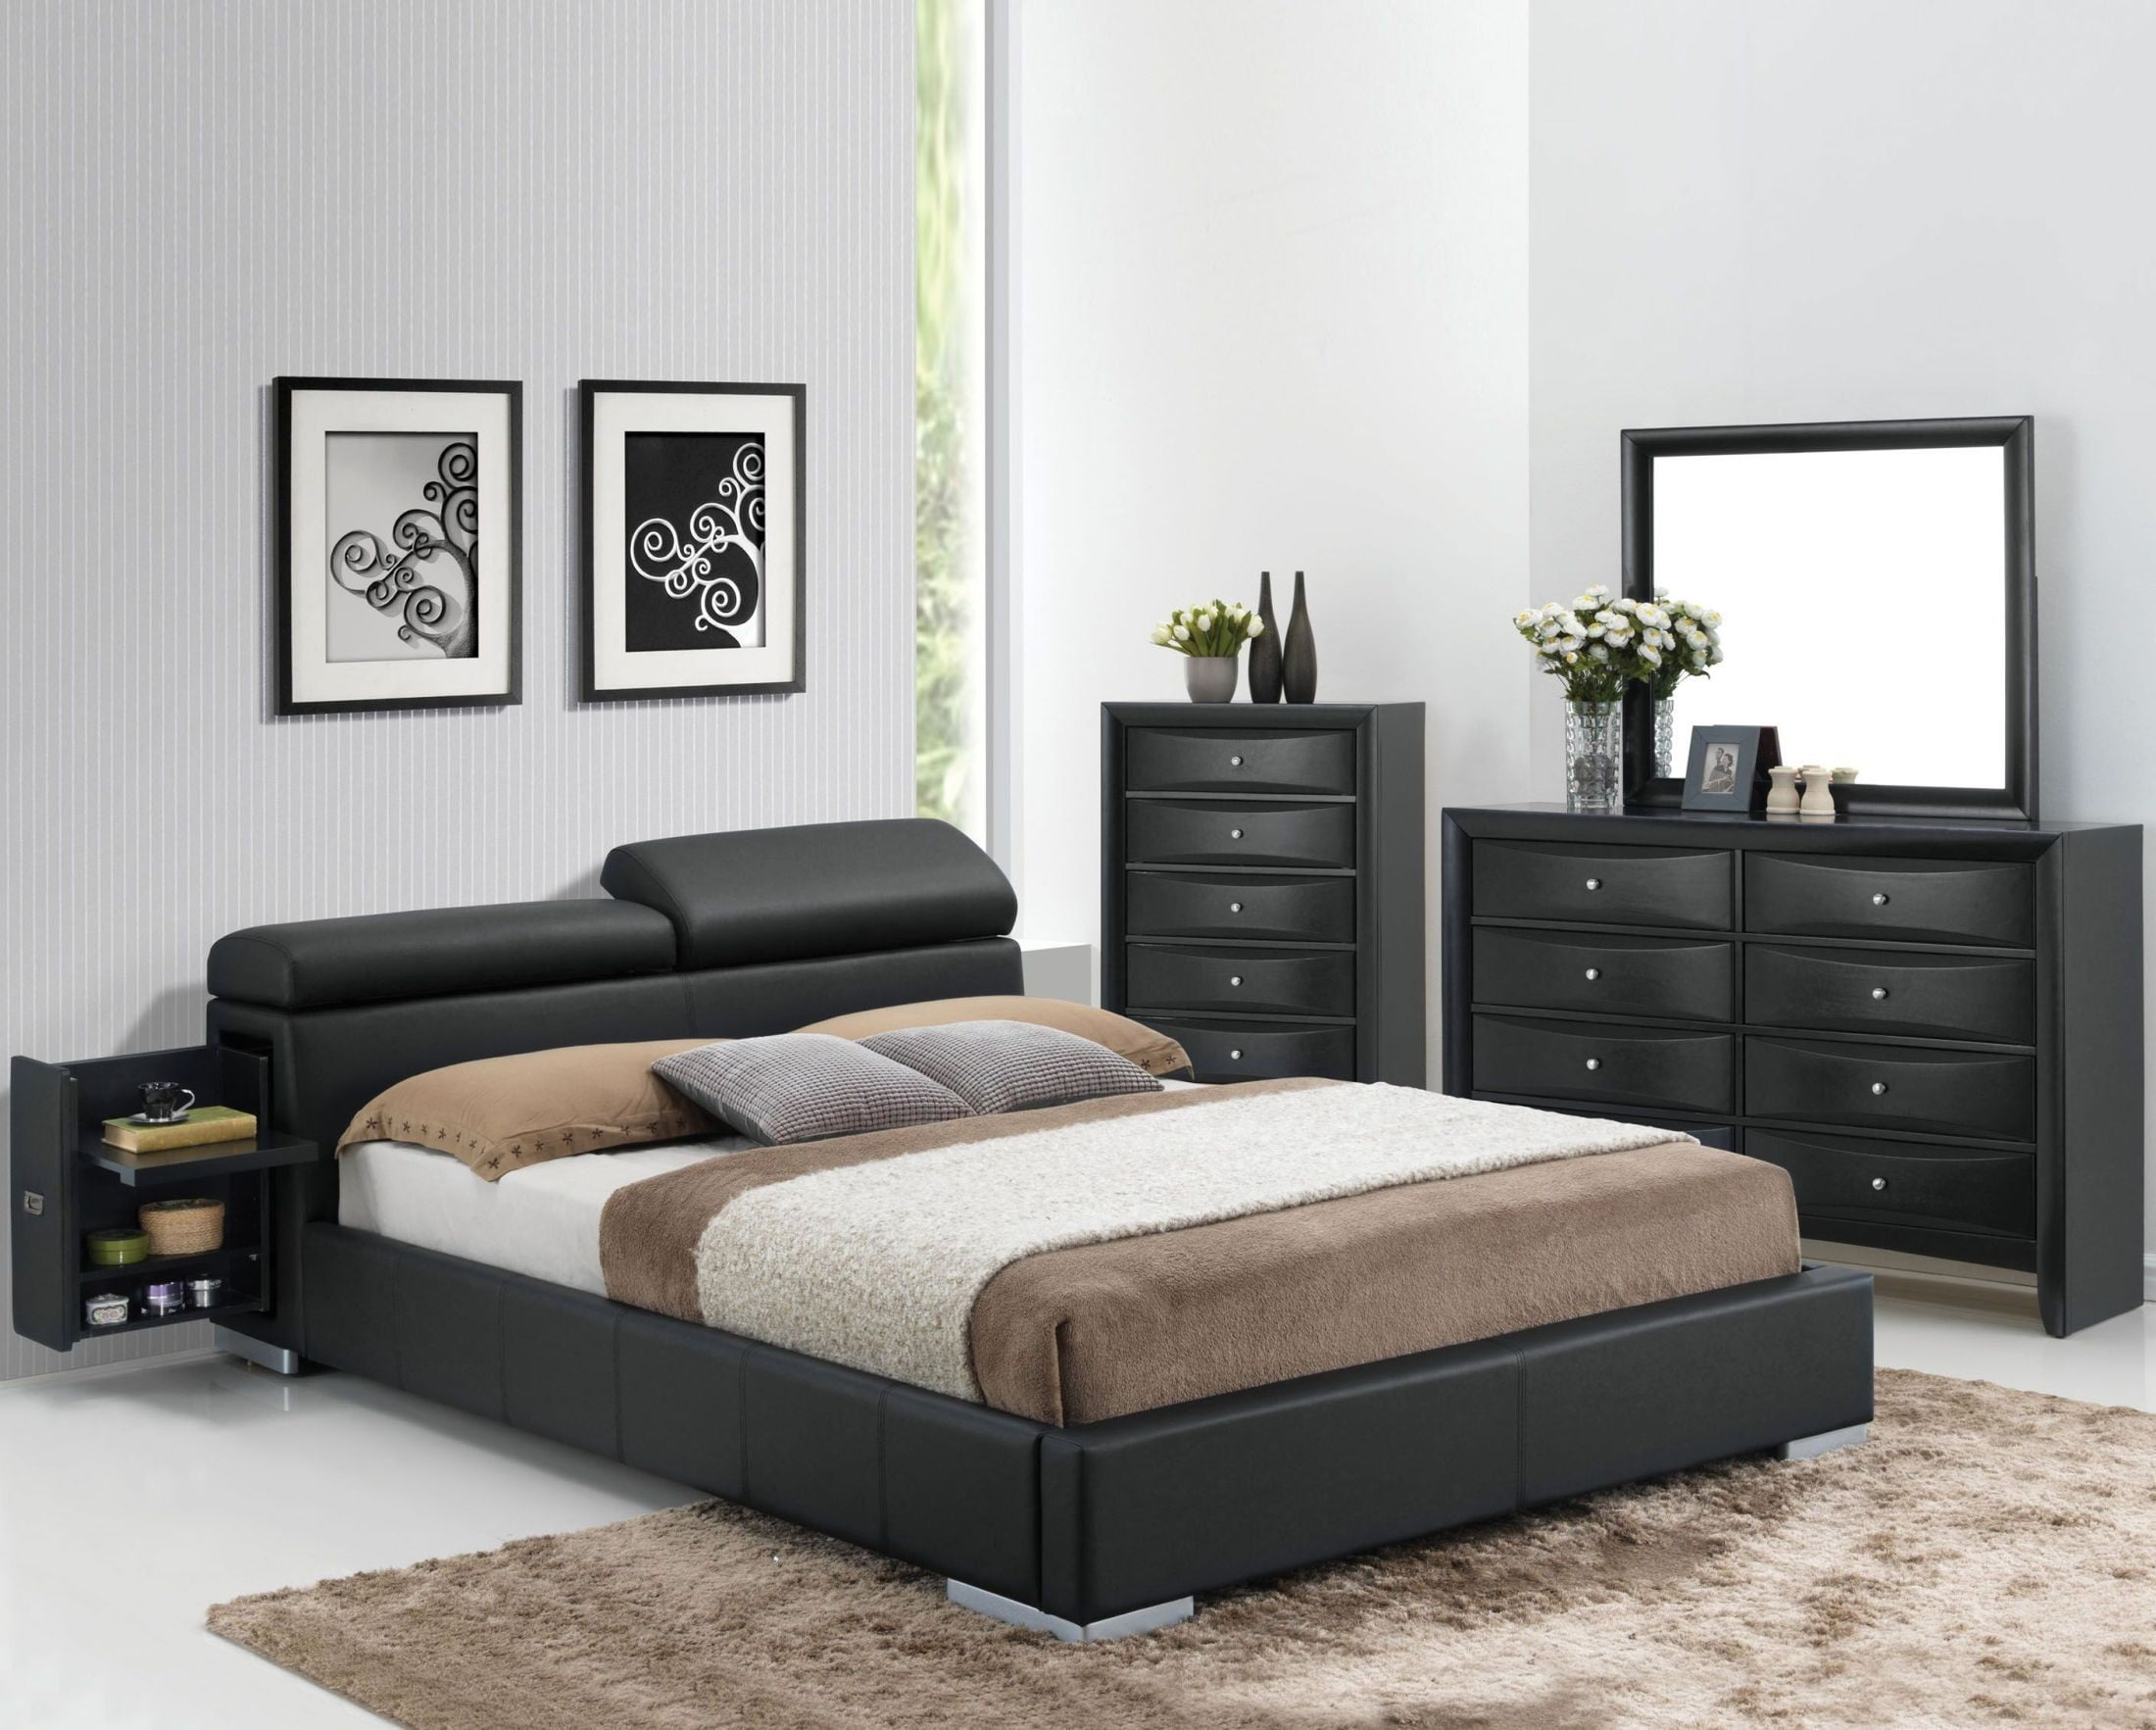 Manjot Black King Hidden Storage Platform Bed From Acme